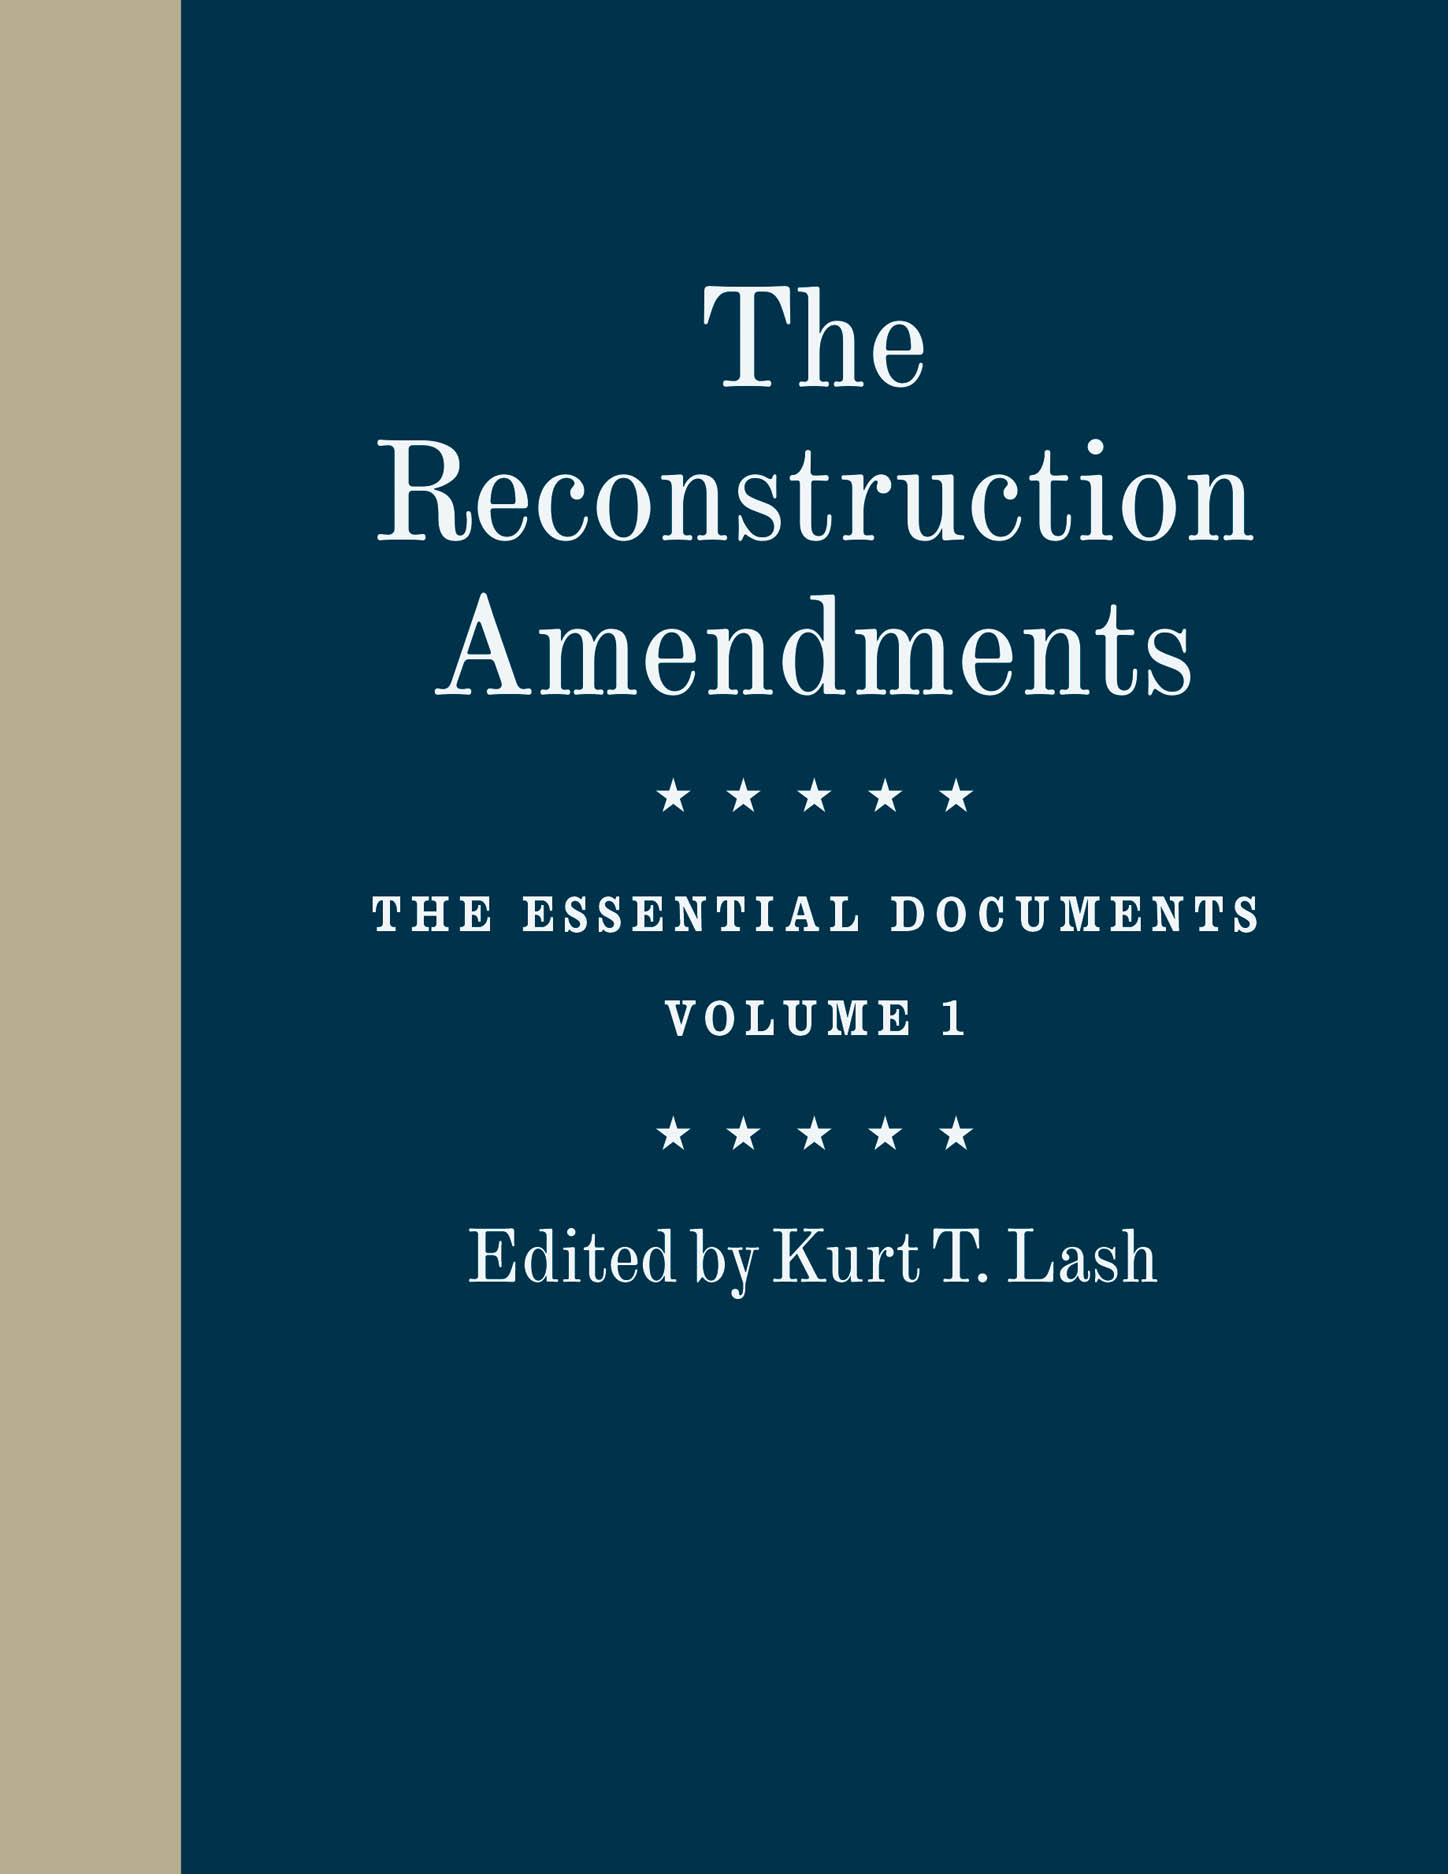 The Reconstruction Amendments: The Essential Documents, Volume 1